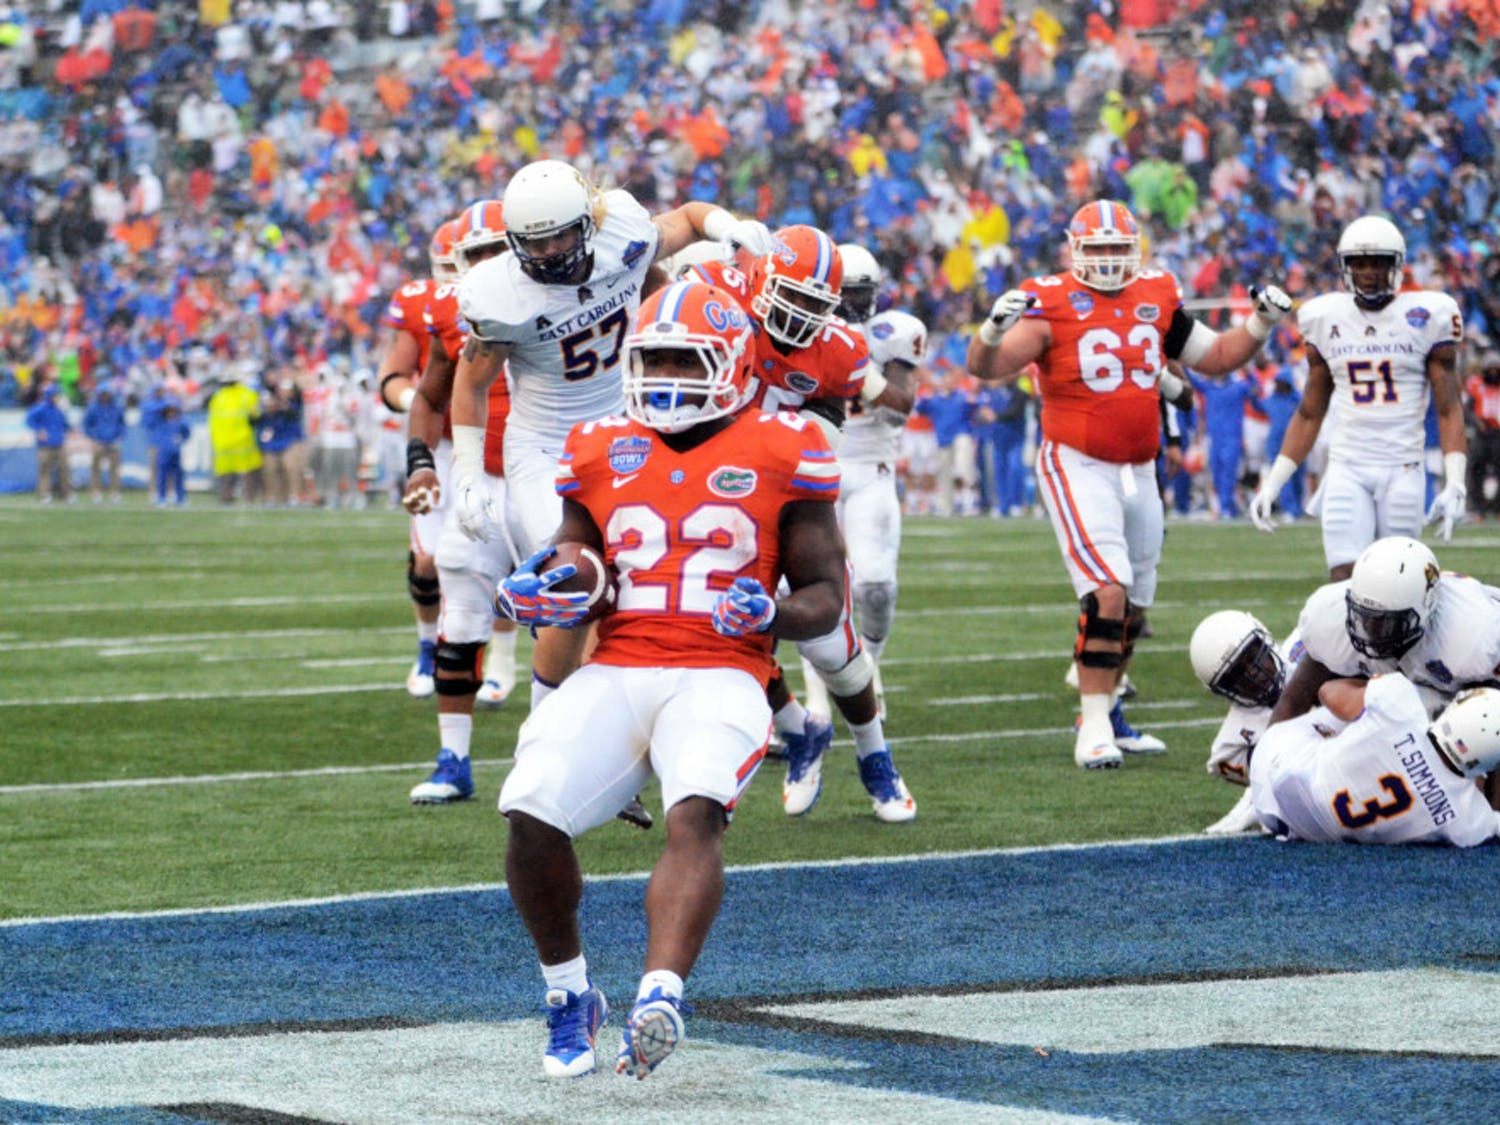 Adam Lane rushes into the end zone for a touchdown during Florida's 28-20 win against East Carolina on Jan. 3 in the Birmingham Bowl at Legion Field.